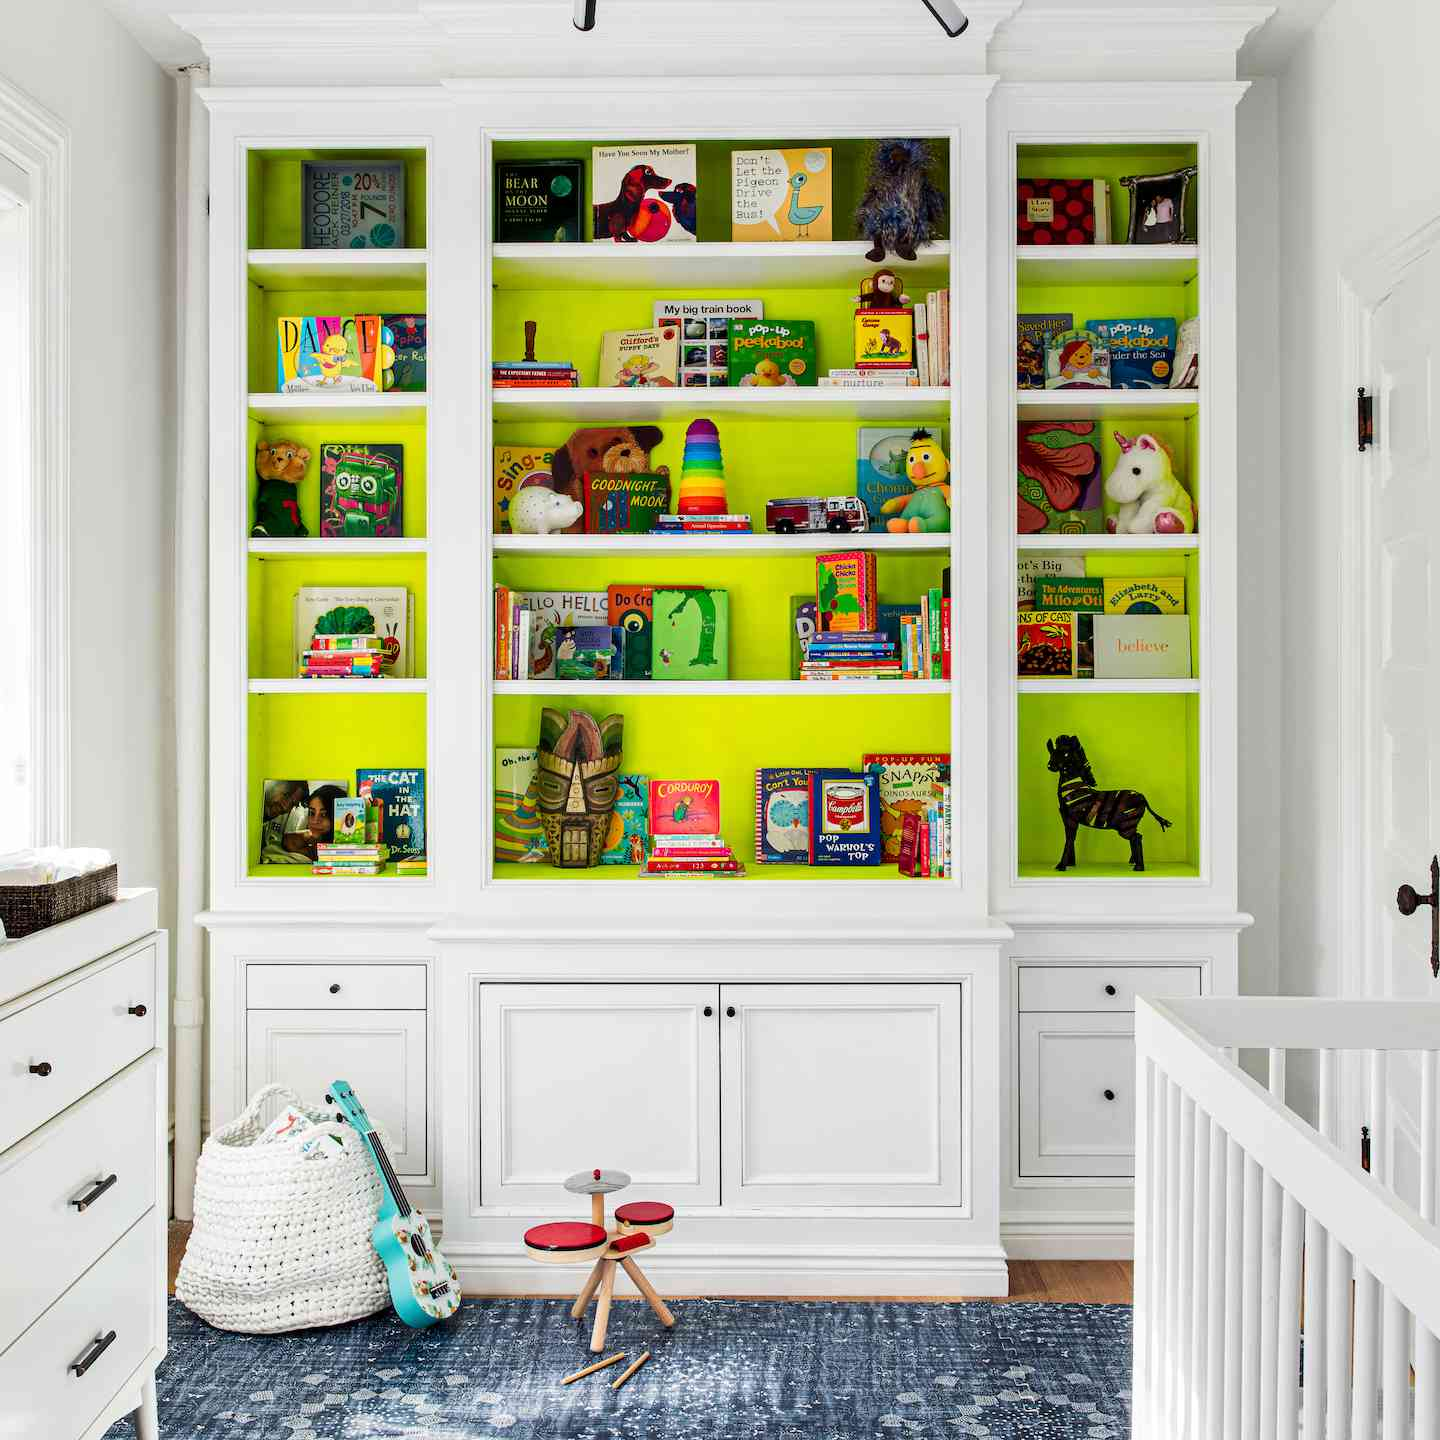 A large white built-in in the kids bedroom.